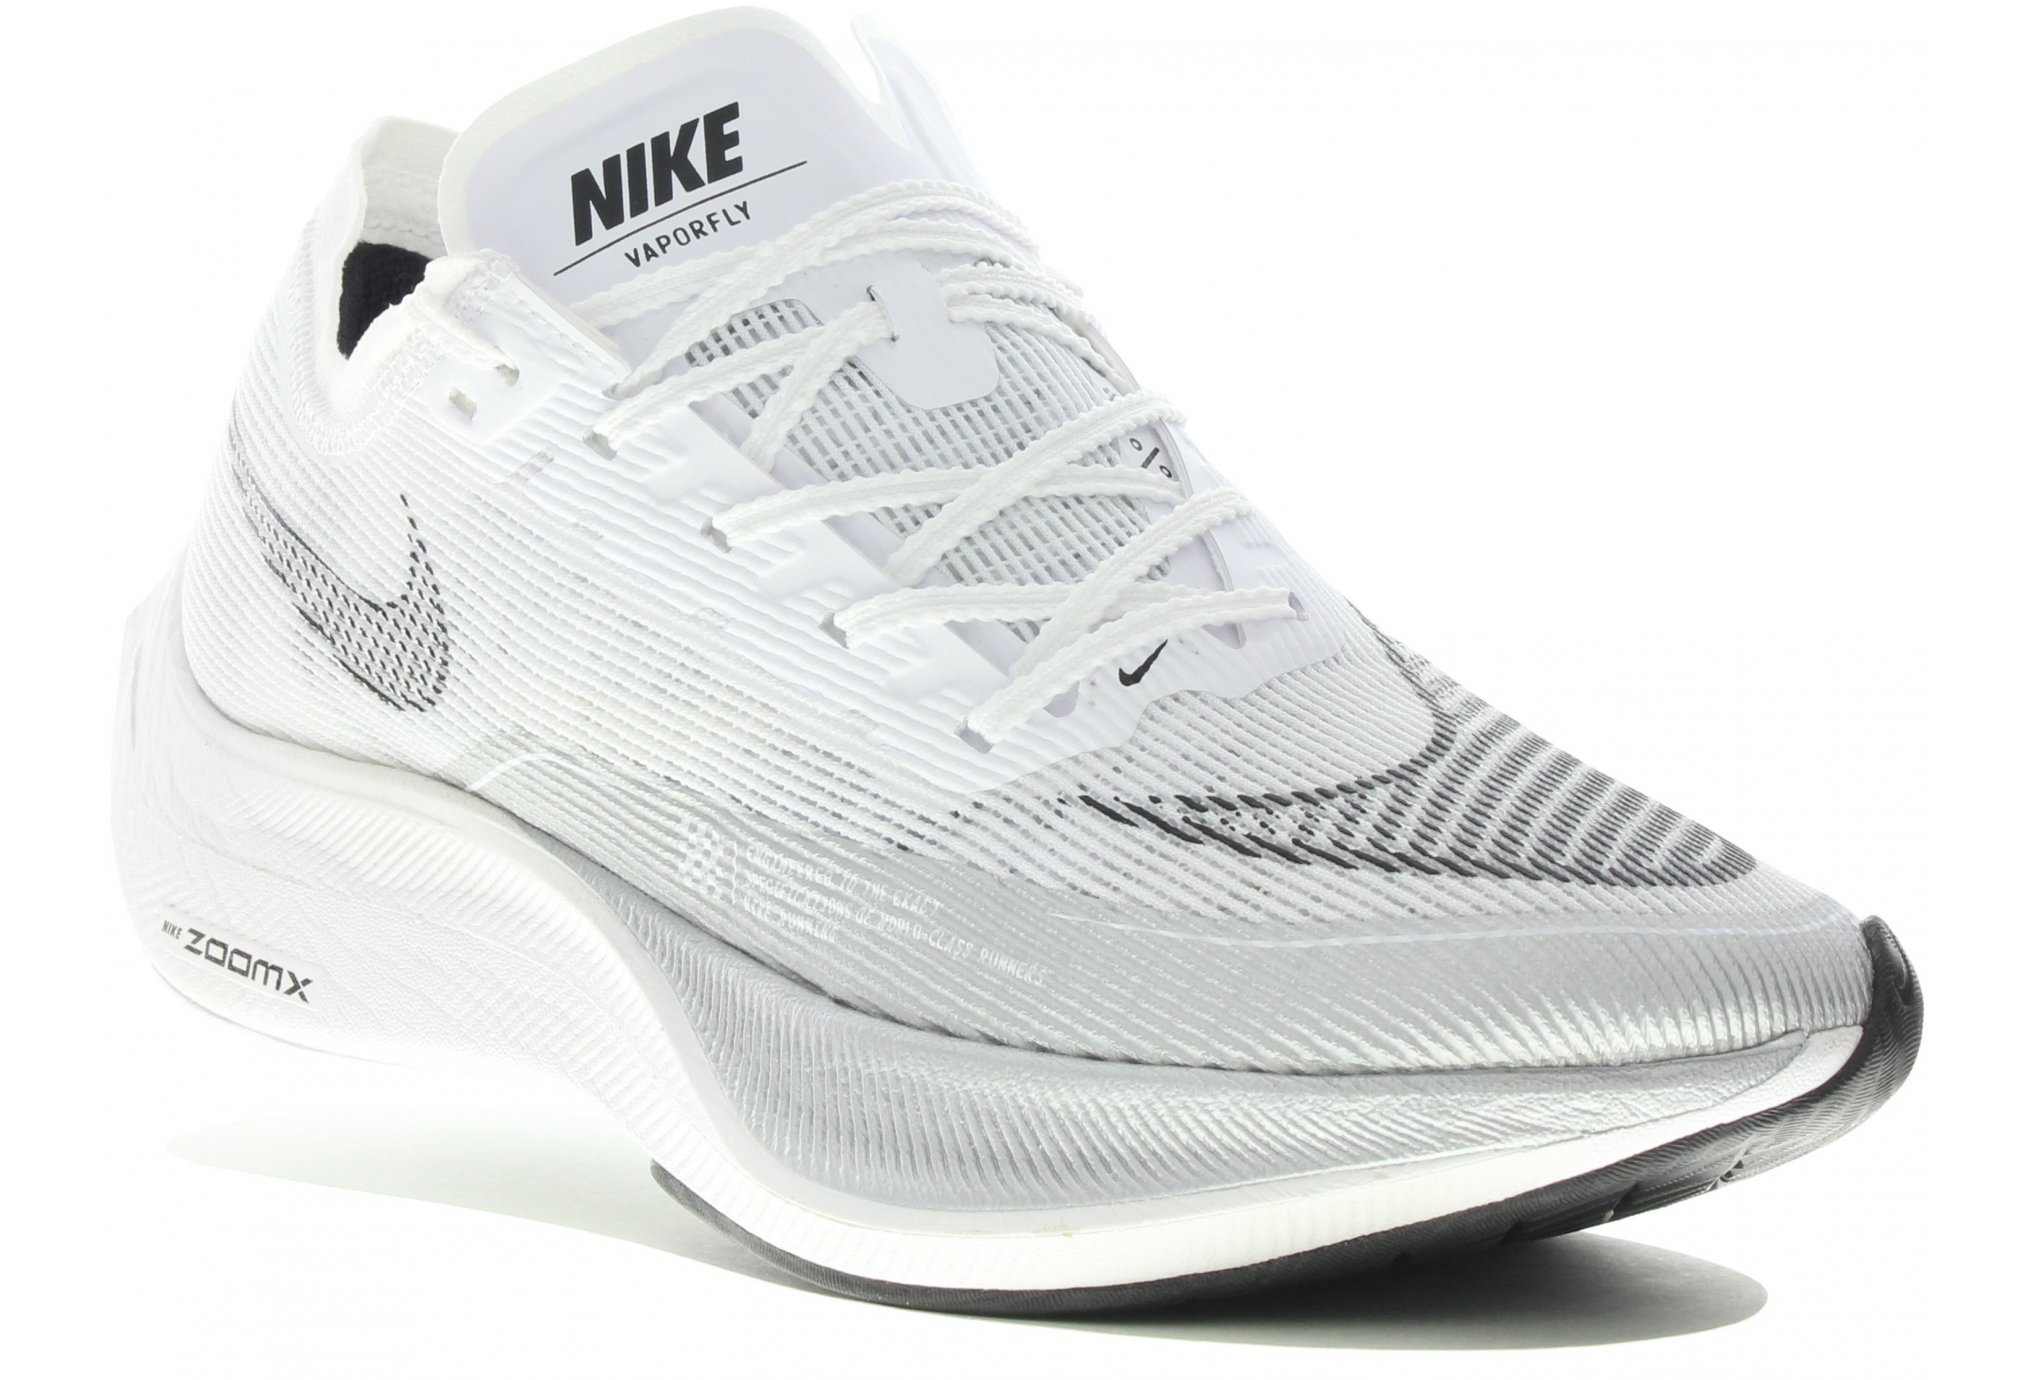 Nike ZoomX Vaporfly Next% 2 W Chaussures running femme